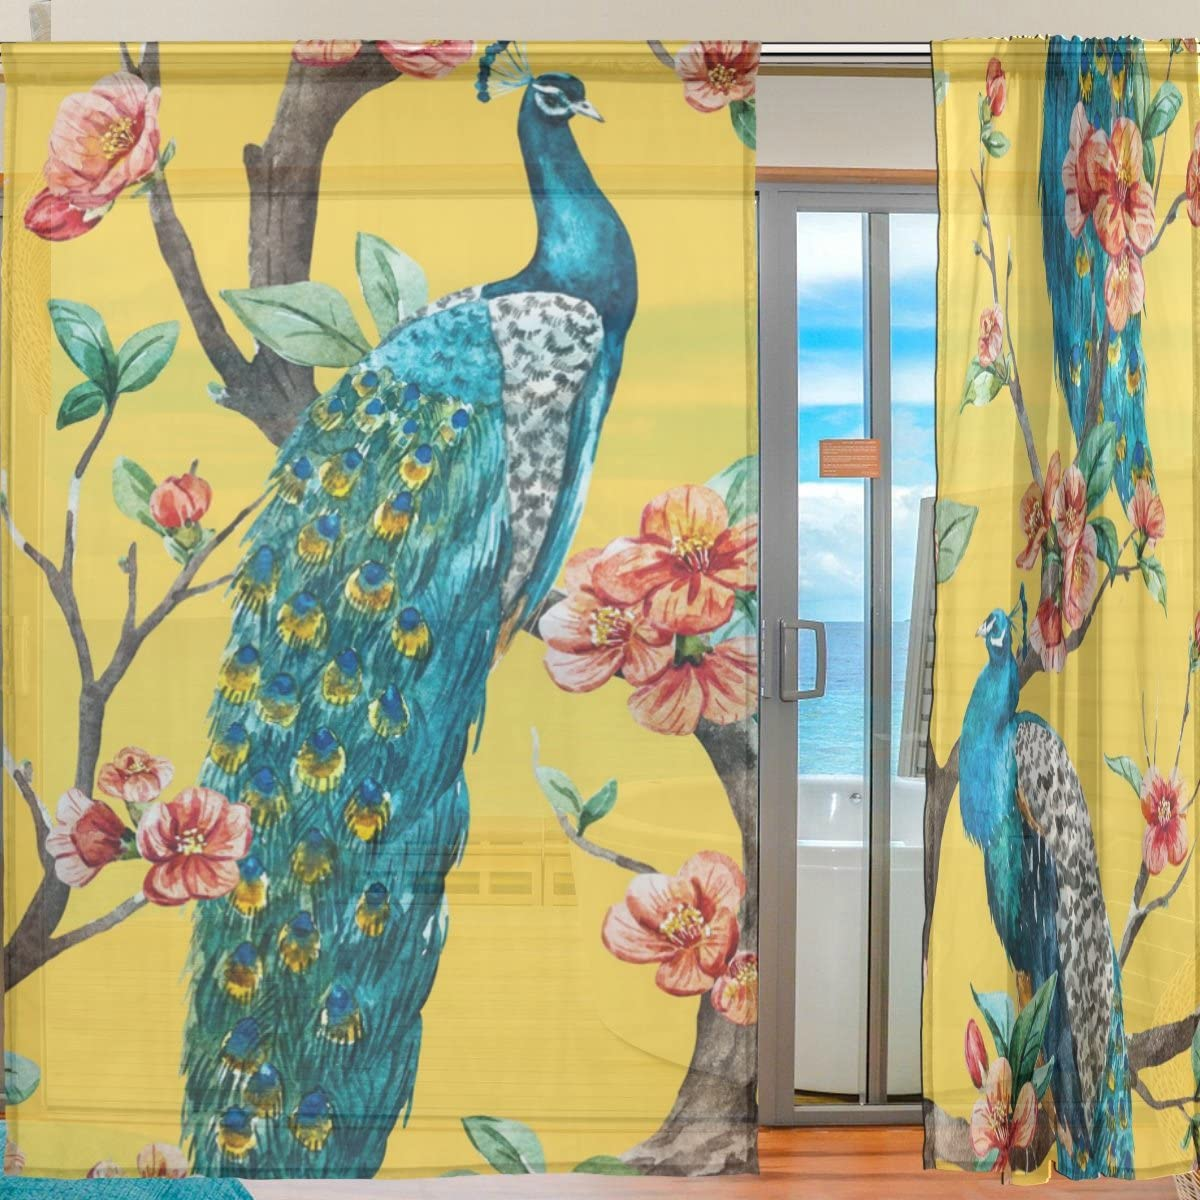 SEULIFE Window Sheer Curtain Tropical Flower Animal Peacock Tree Voile Curtain Drapes for Door Kitchen Living Room Bedroom 55×84 inches 2 Panels